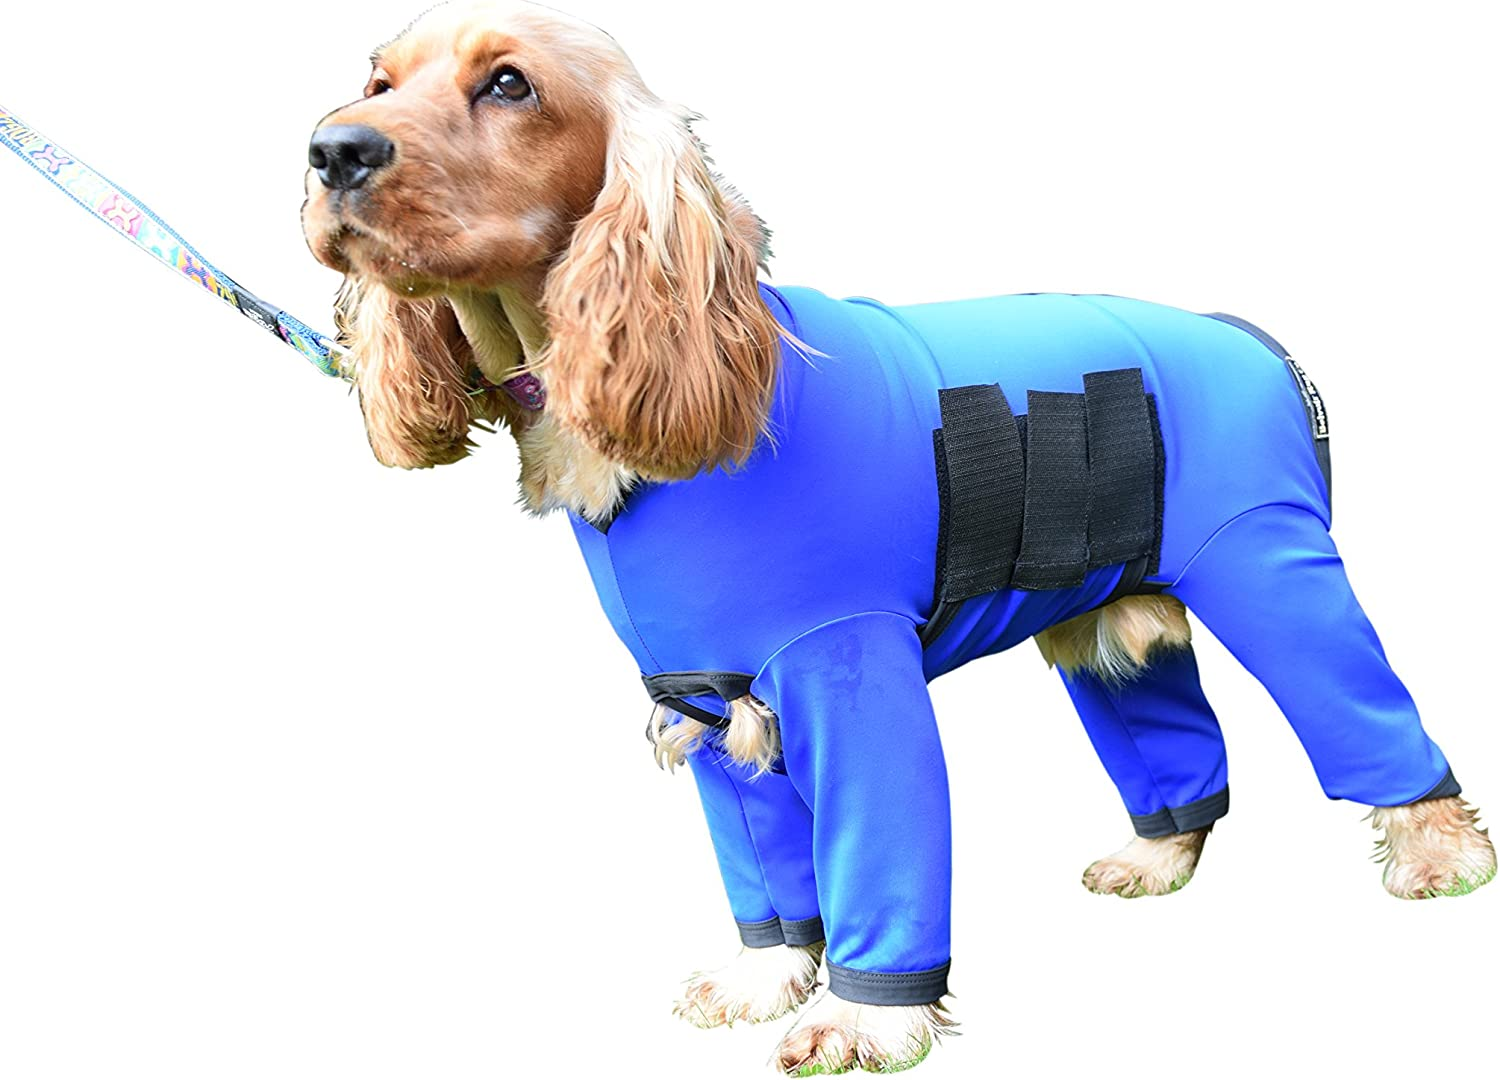 Dog Onesie All in One Dog Cover Coat in Nylon Lycra  For Dirty Dogs, Shedding or After Surgery  Royal bluee with Black Binding (XL (23.5  Collar Tail for dog 22 25 ))